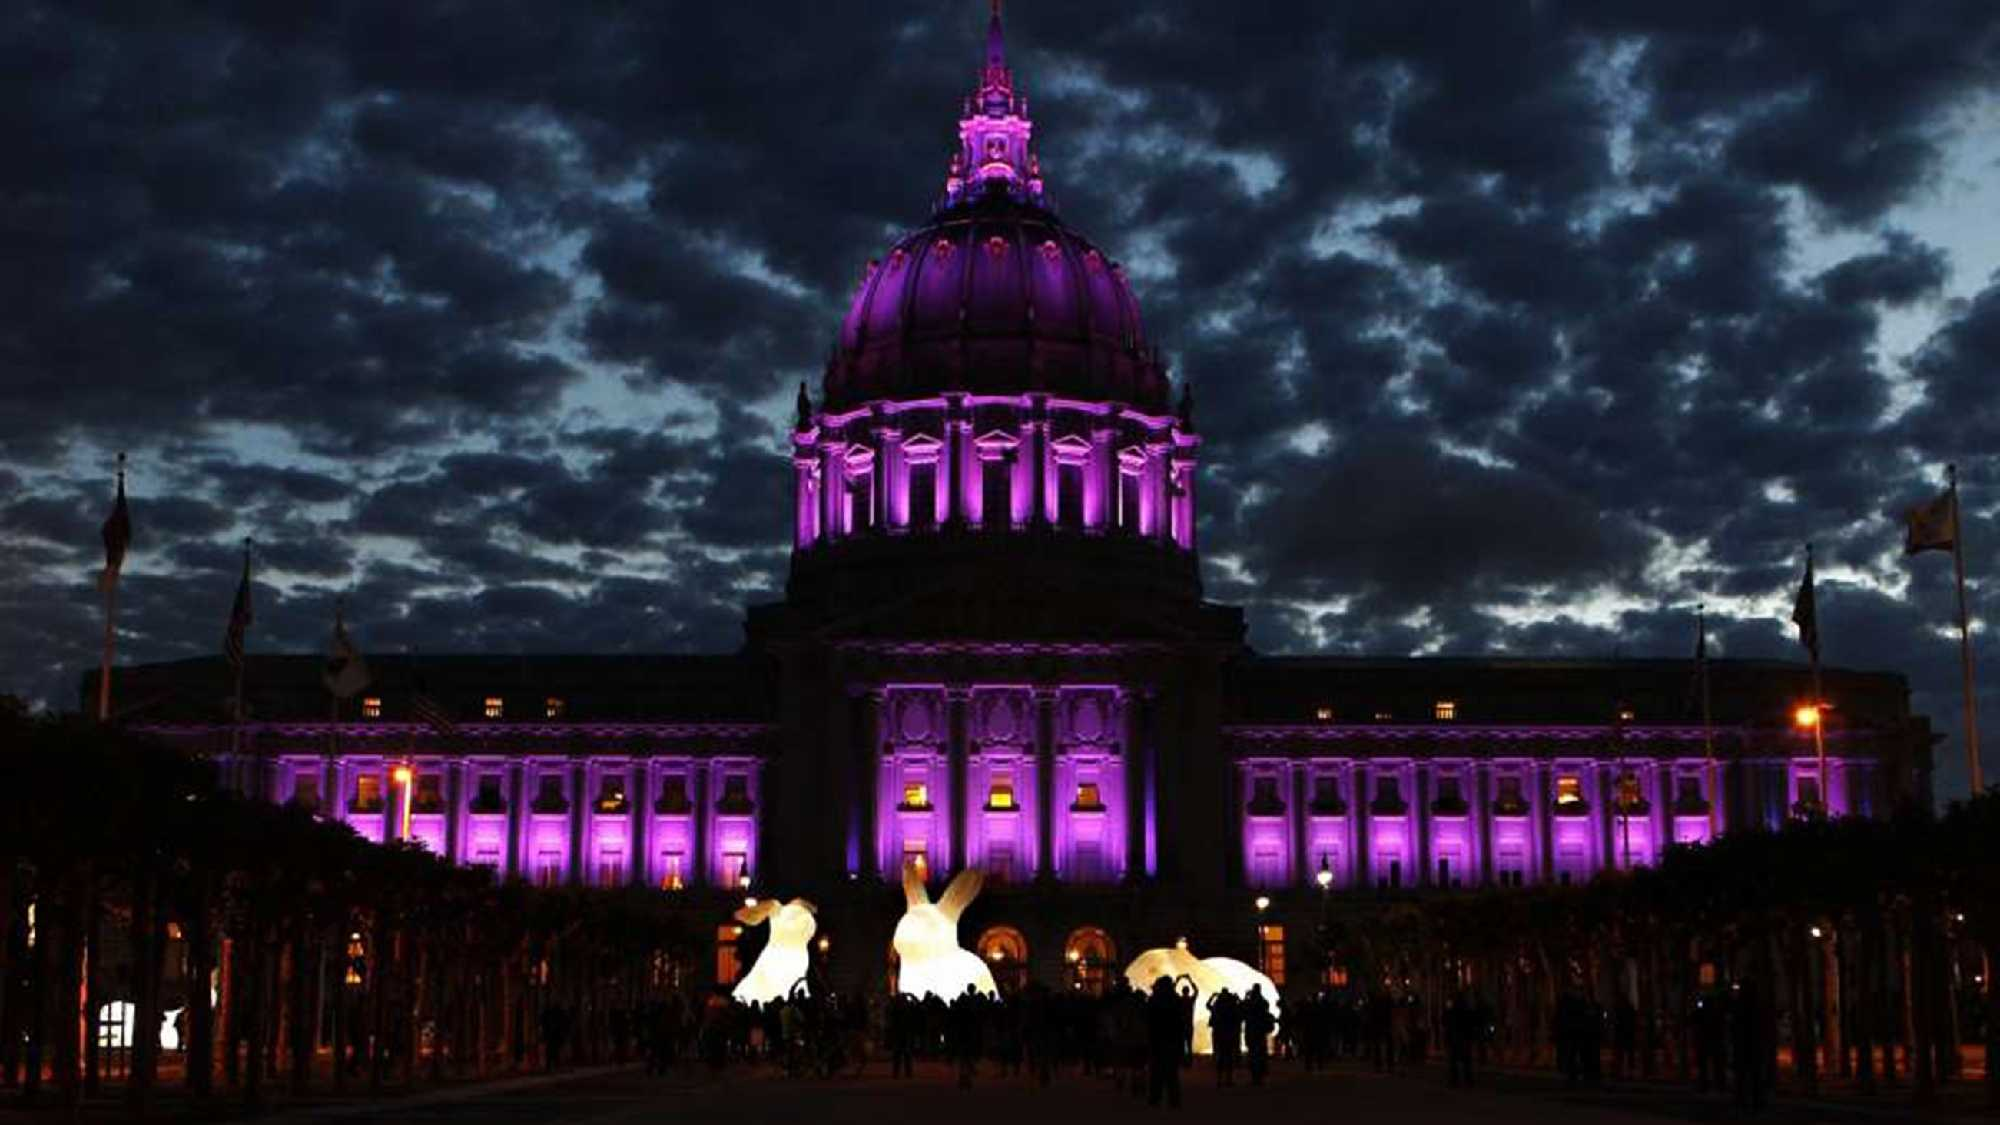 San Francisco pays tribute to the late musical artist Prince by lighting up City Hall in purple lights on Thursday, April 21, 2016.